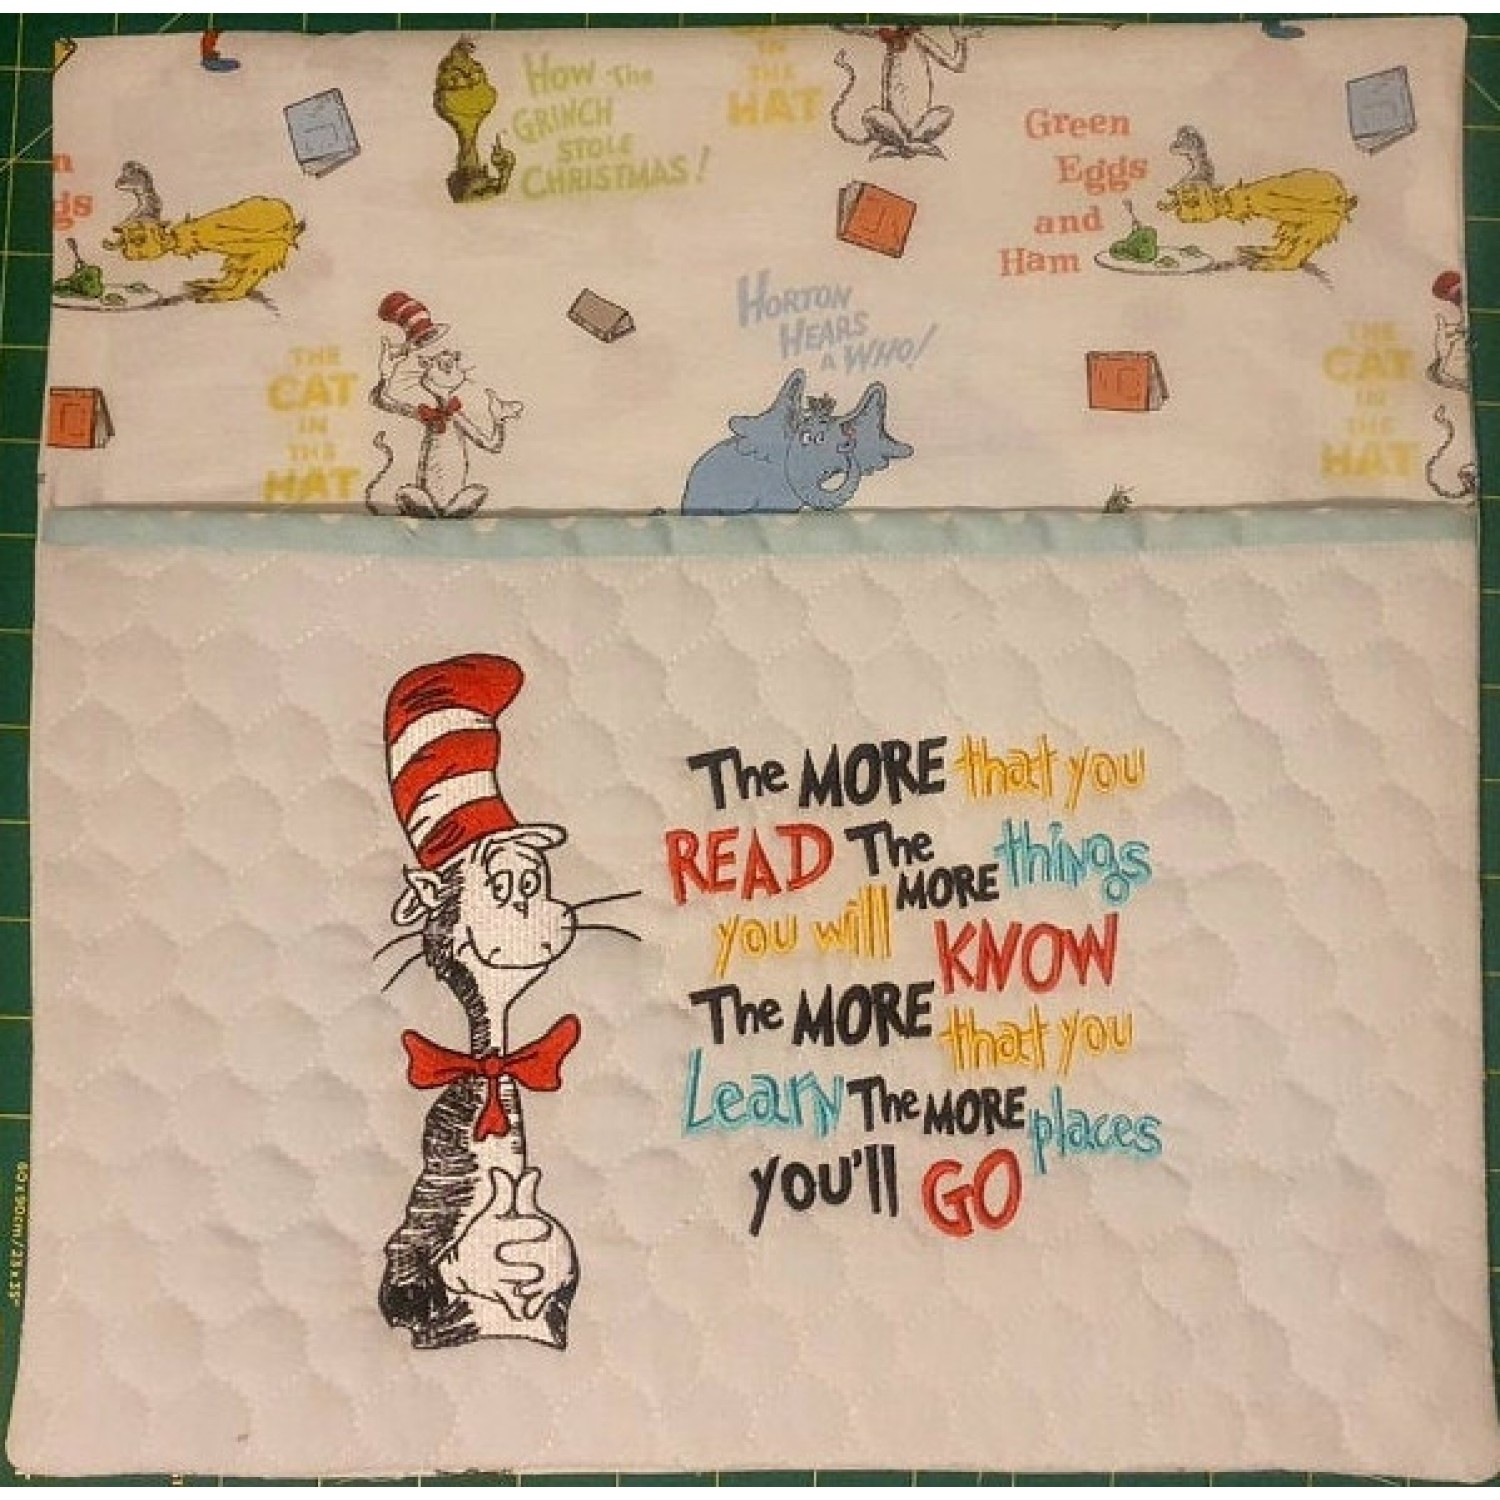 Dr. Seuss embroidery with the more that you read